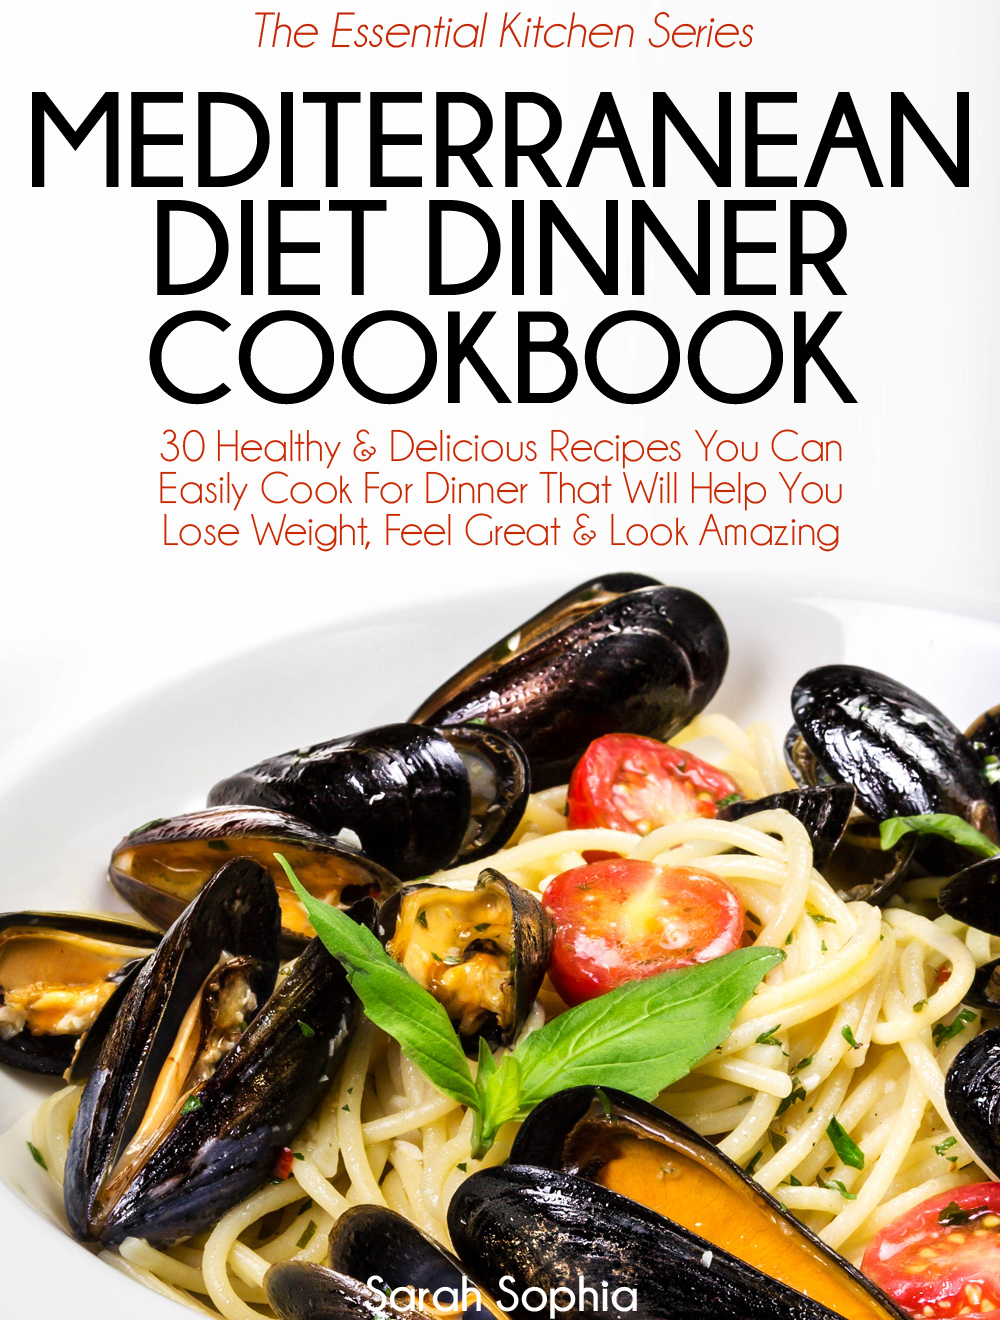 Mediterranean diet dinner cookbook